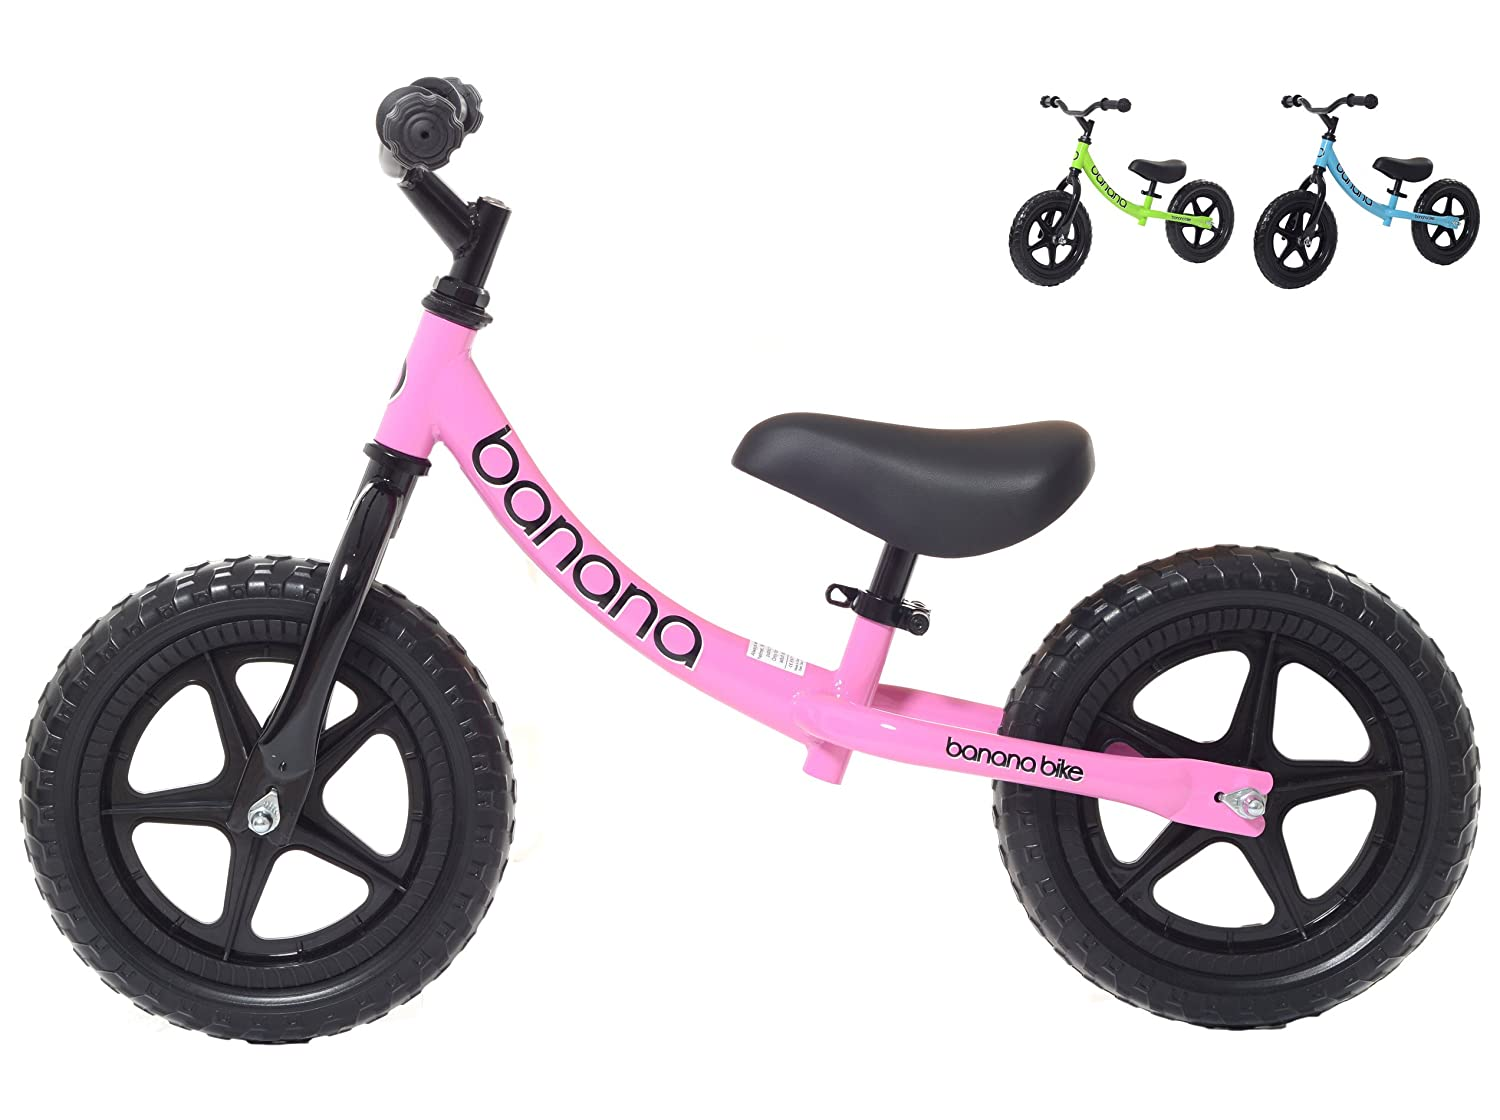 Banana Bike LT - Lightweight Balance Bike for Kids - 2, 3, 4 Year Olds 3 & 4 Year Olds (Blue) BBLT